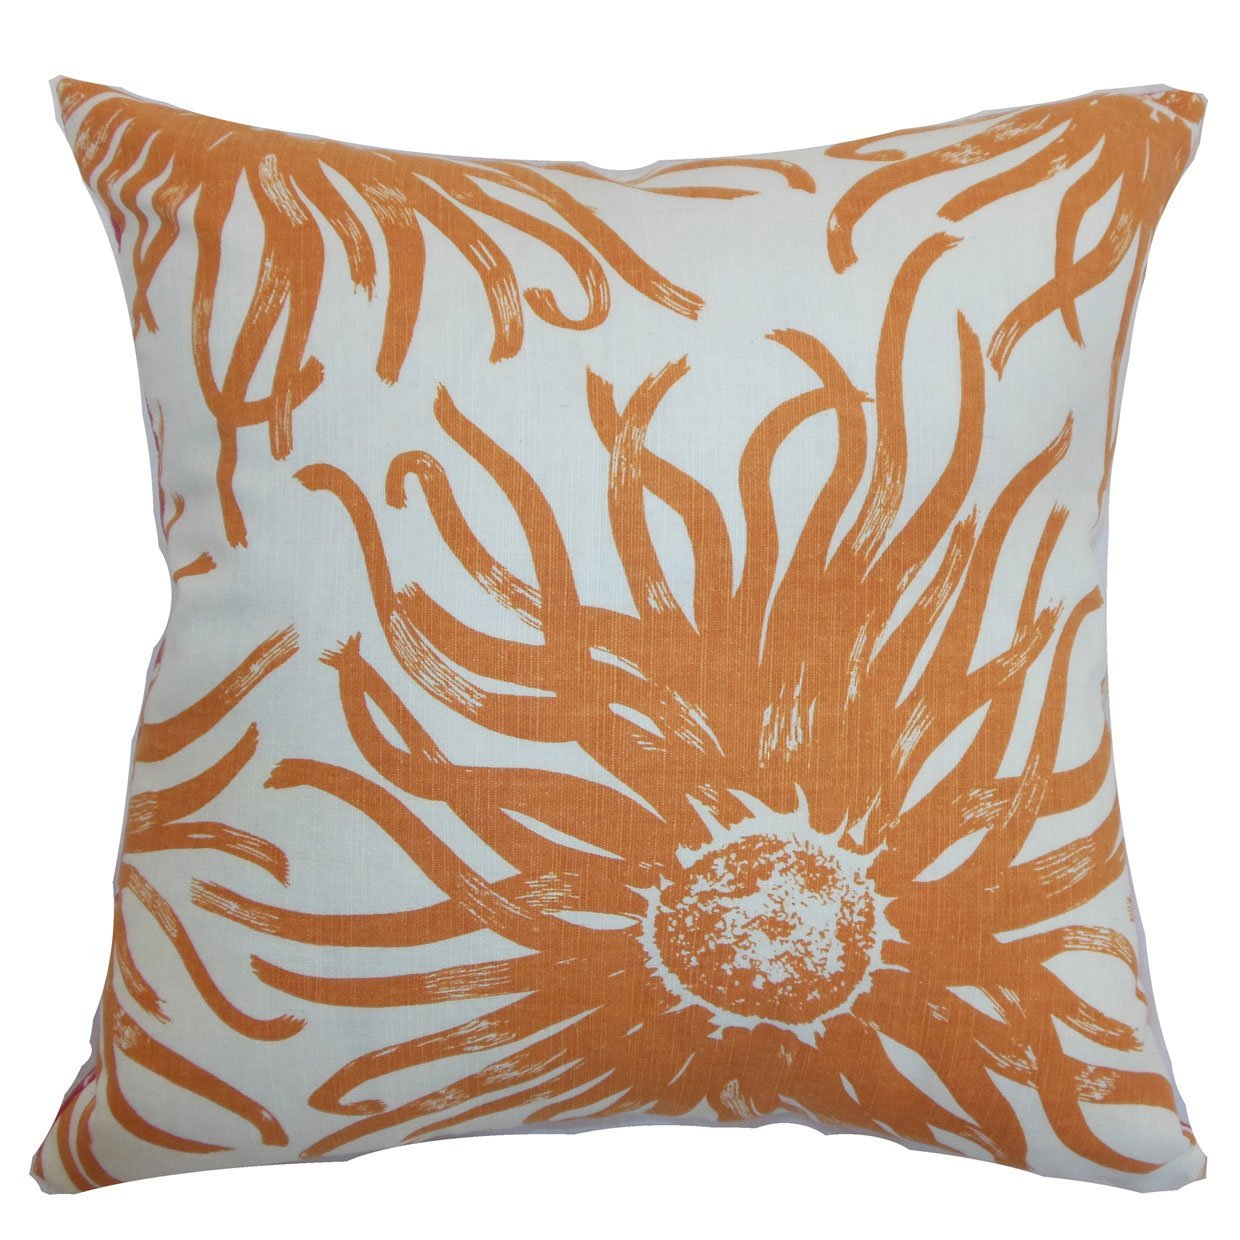 The Pillow Collection Ndele Floral Bedding Sham Papaya Queen//20 x 30